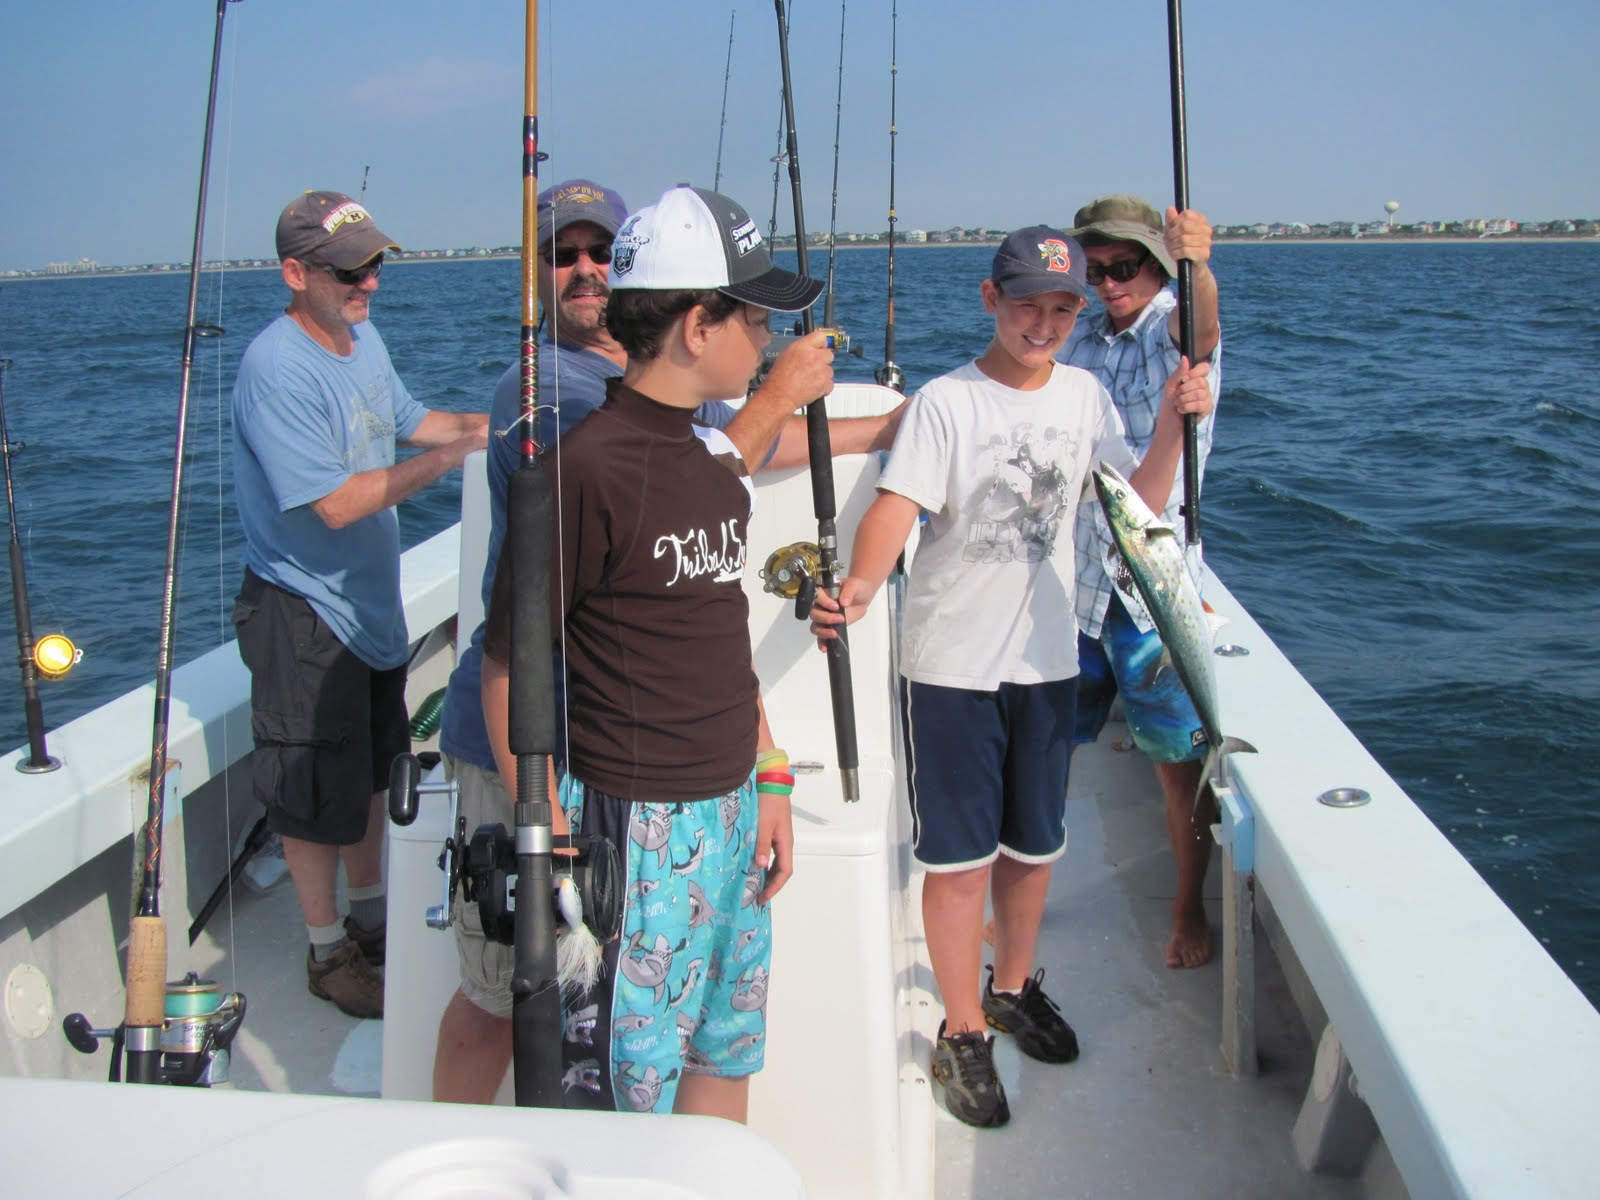 Emerald isle fishing report 2 more great days of fishing for Emerald isle fishing charters